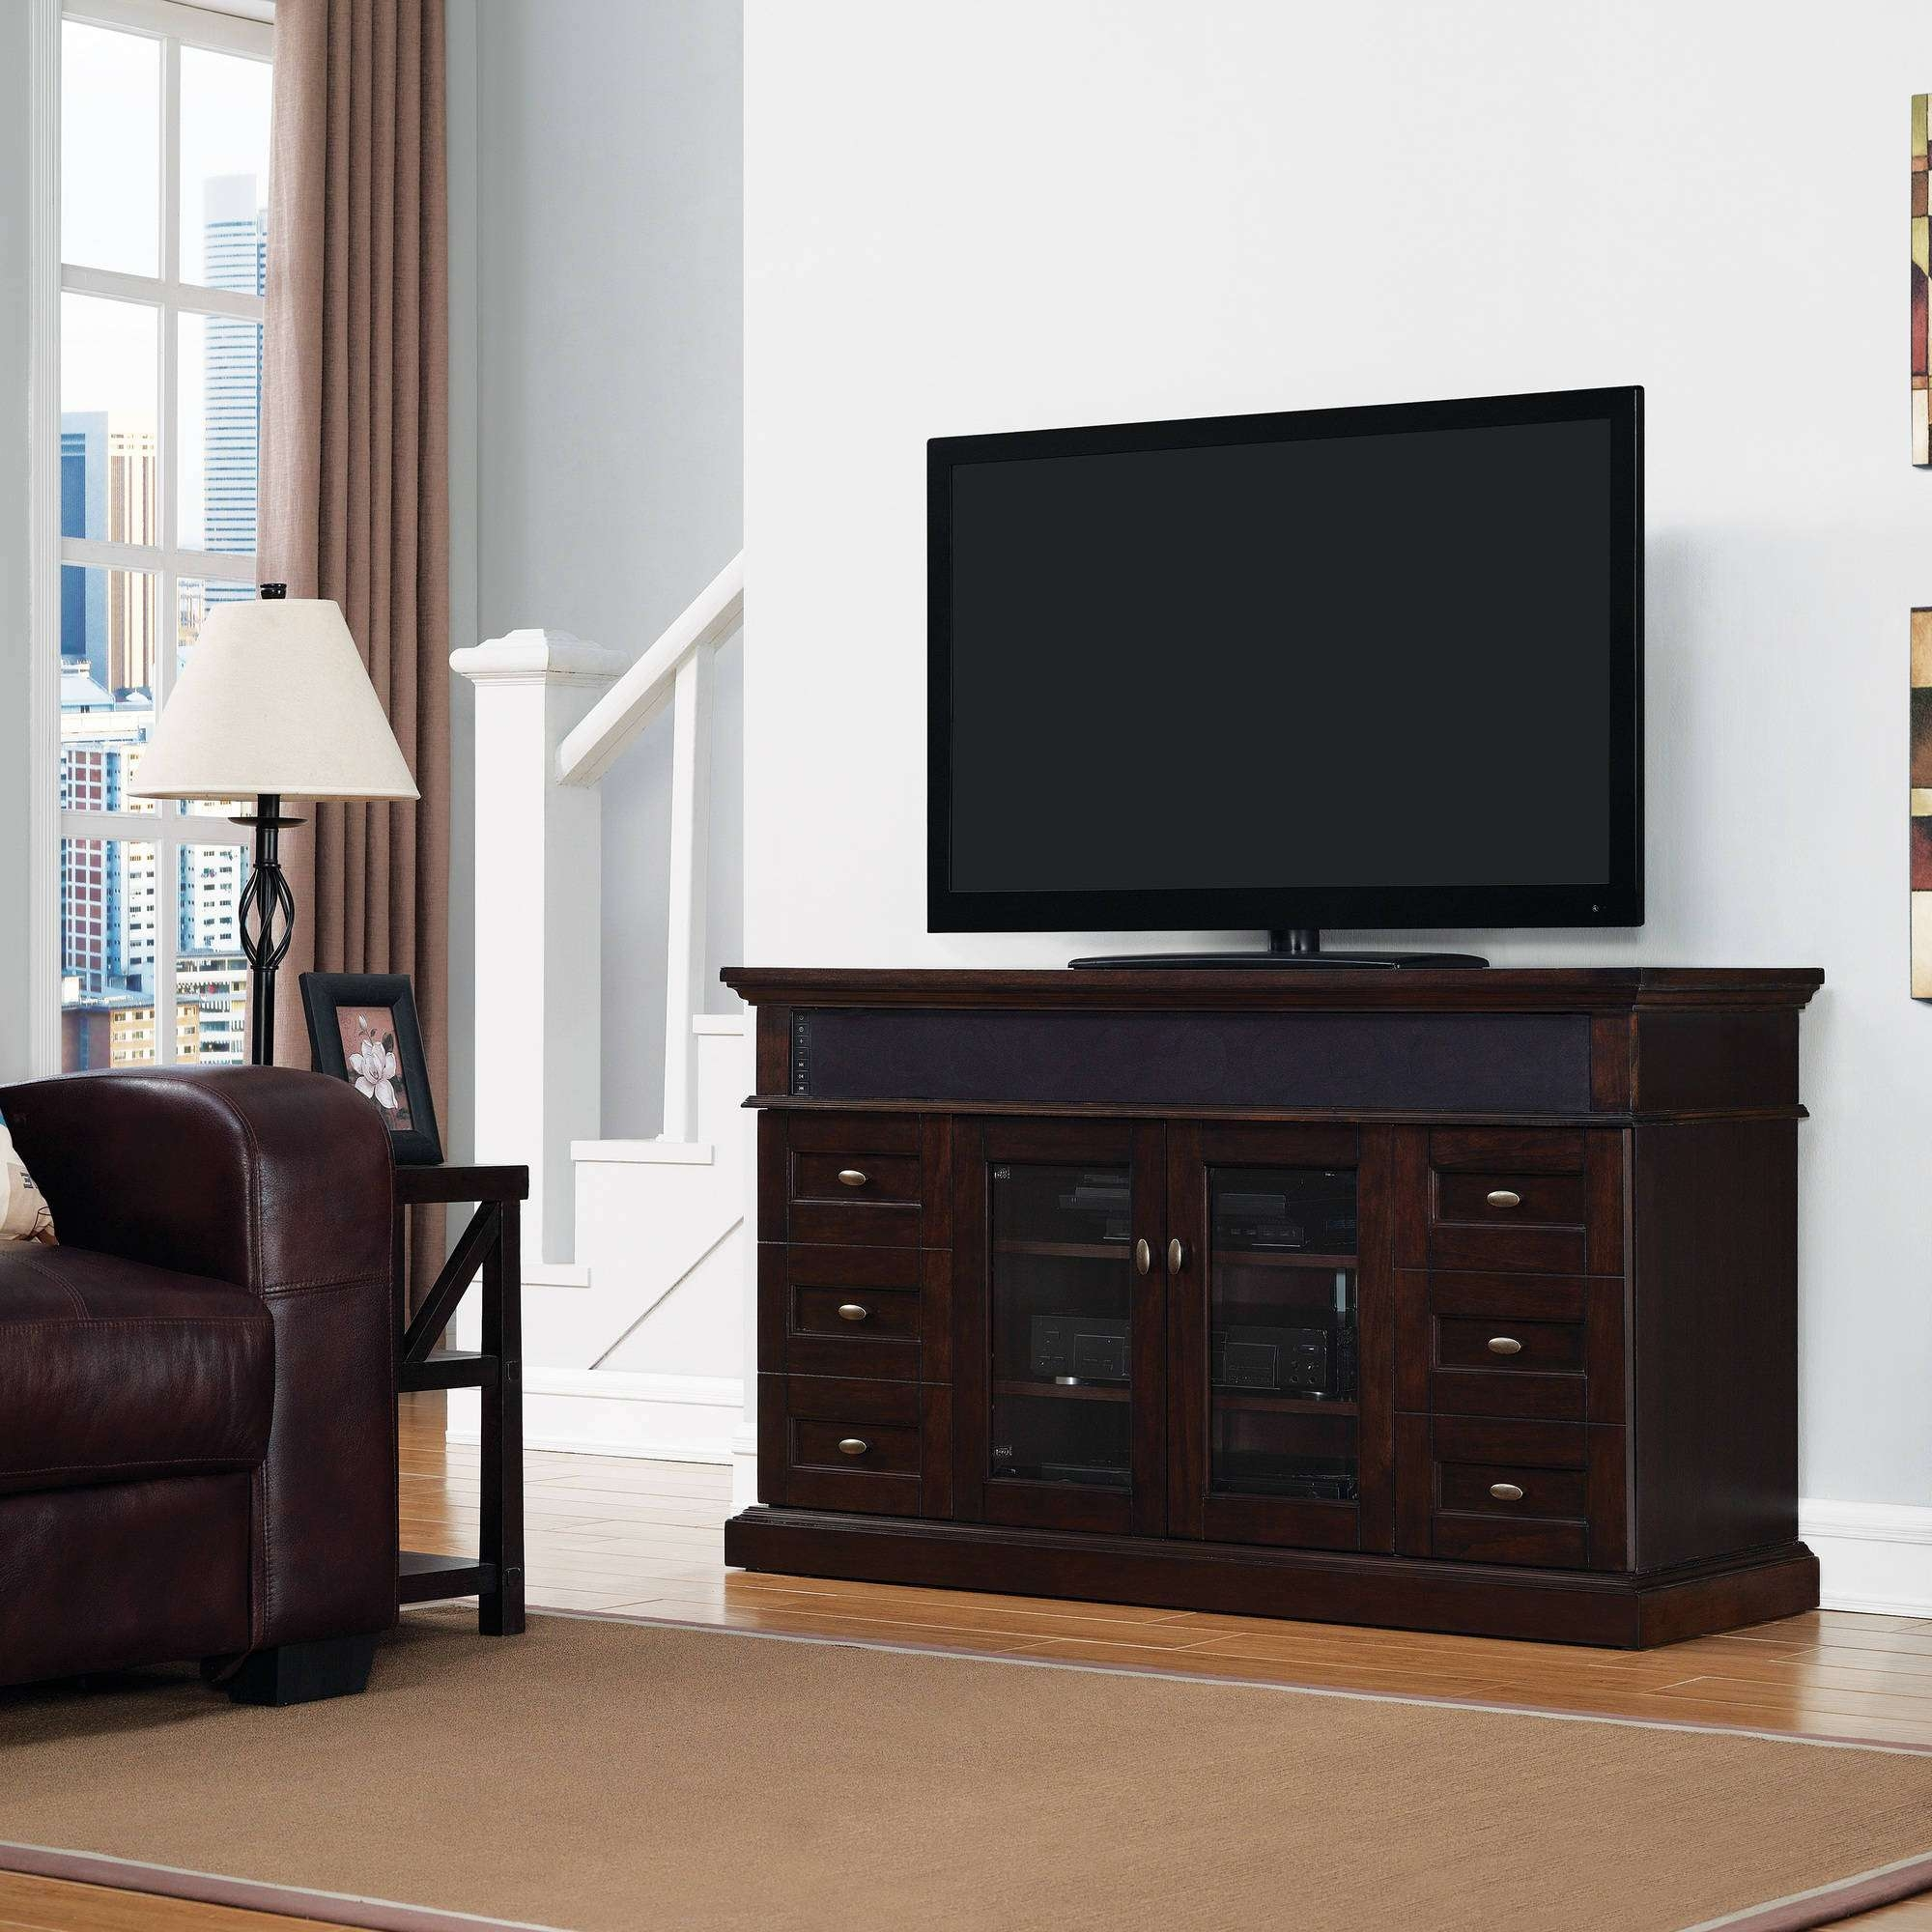 Tv : Fascinate Light Cherry Wood Tv Stand Terrifying Light Cherry In Light Cherry Tv Stands (View 11 of 15)